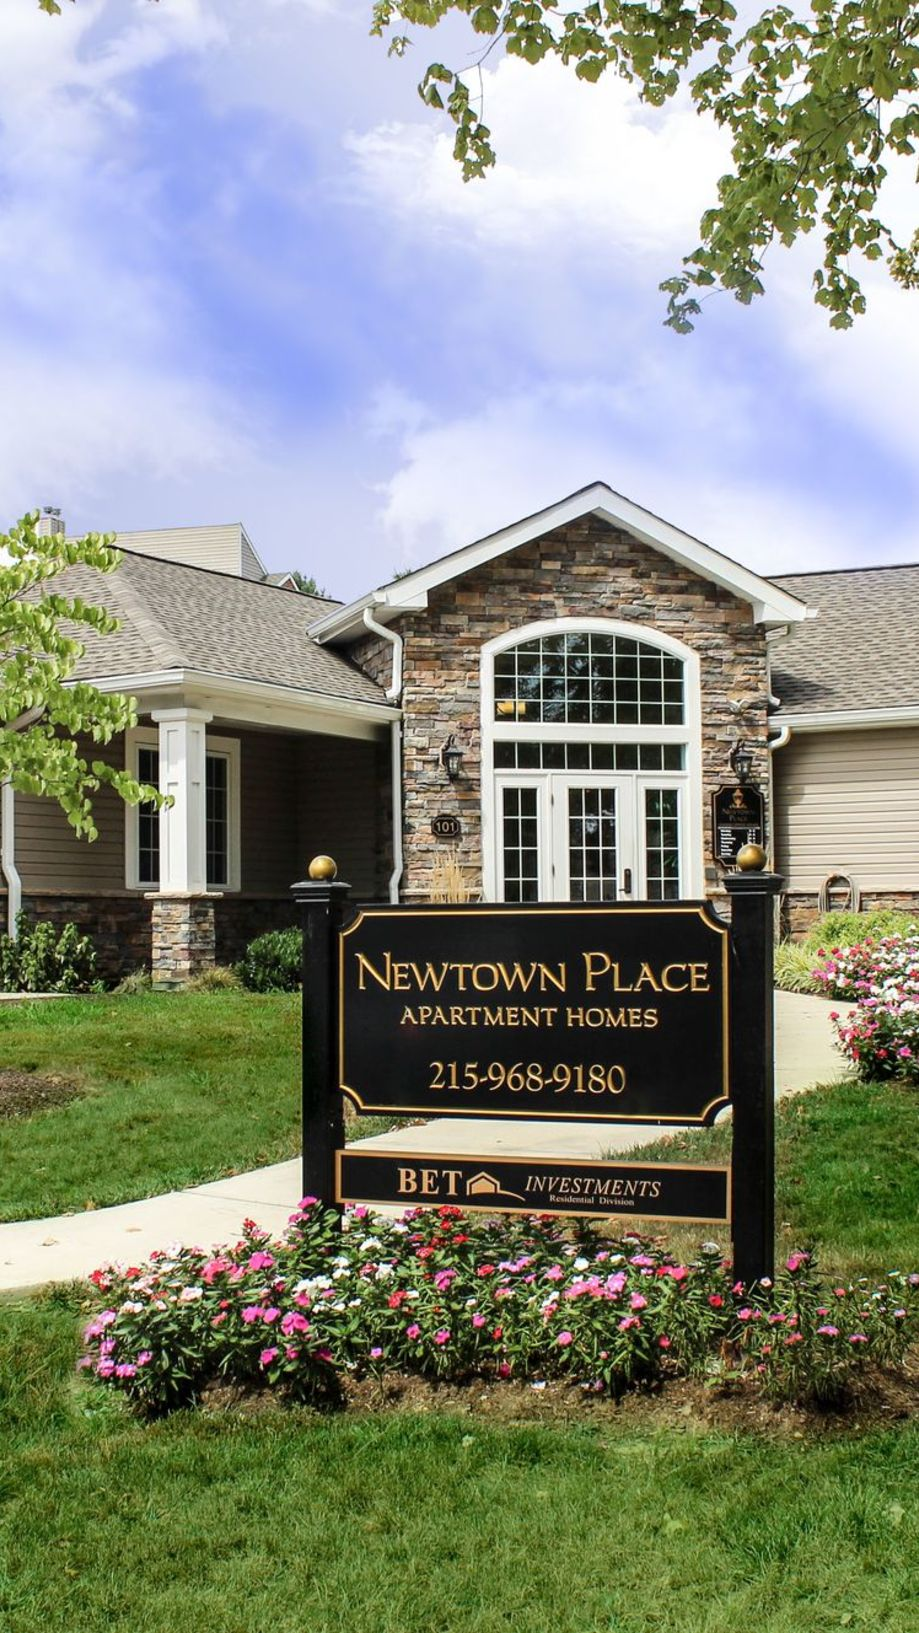 apartments for rent in newtown pa newtown place home